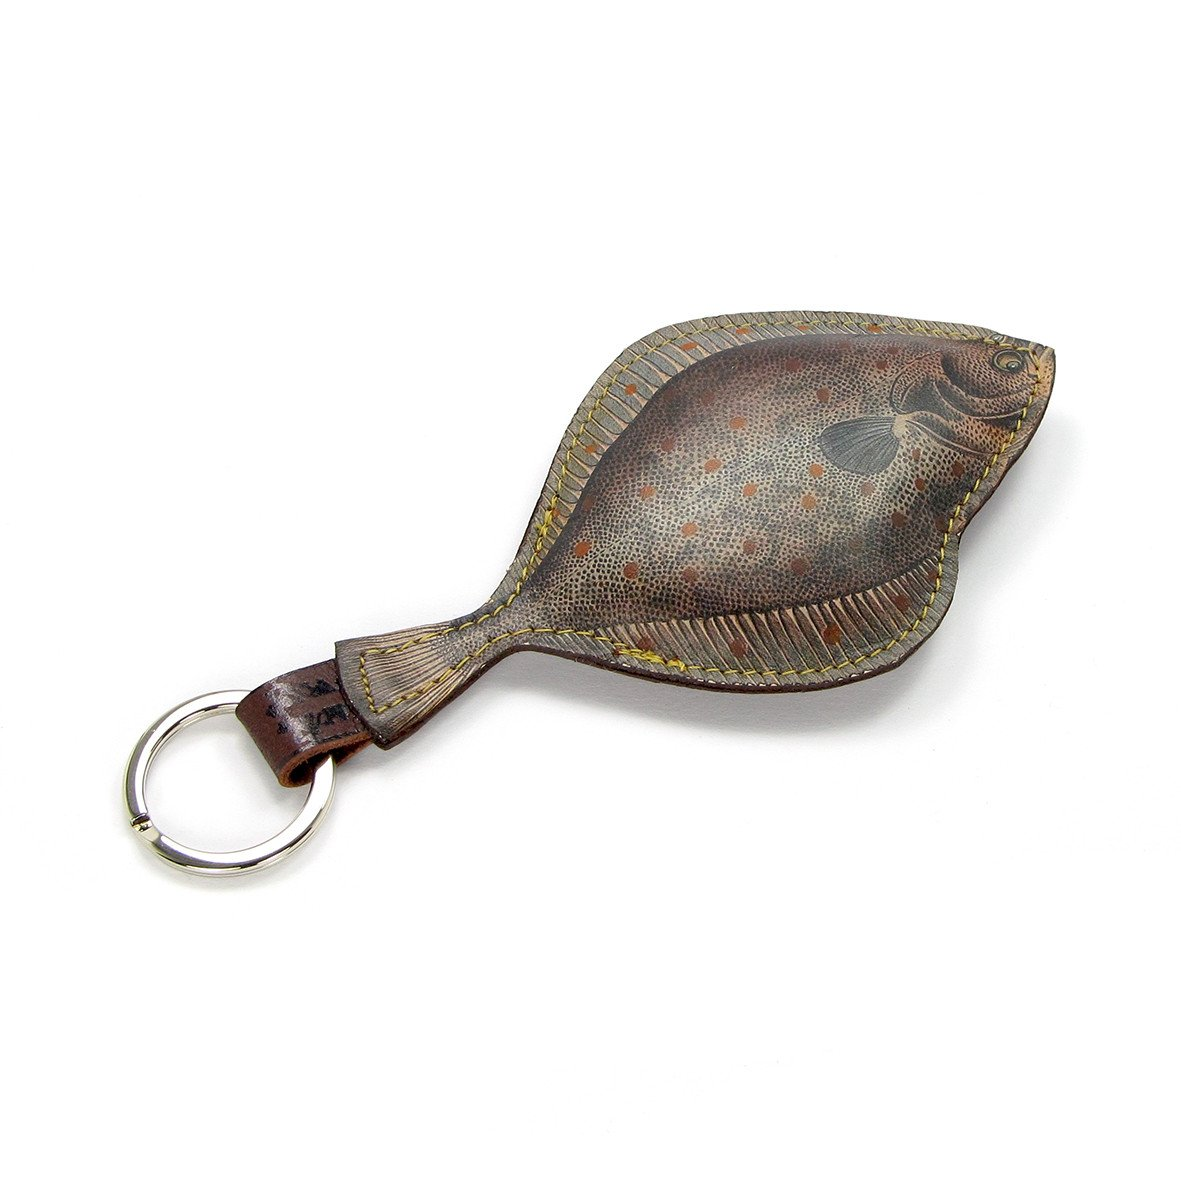 Leather Key Ring - Plaice Fish Key Ring / Bag Charm Tovi Sorga Grey